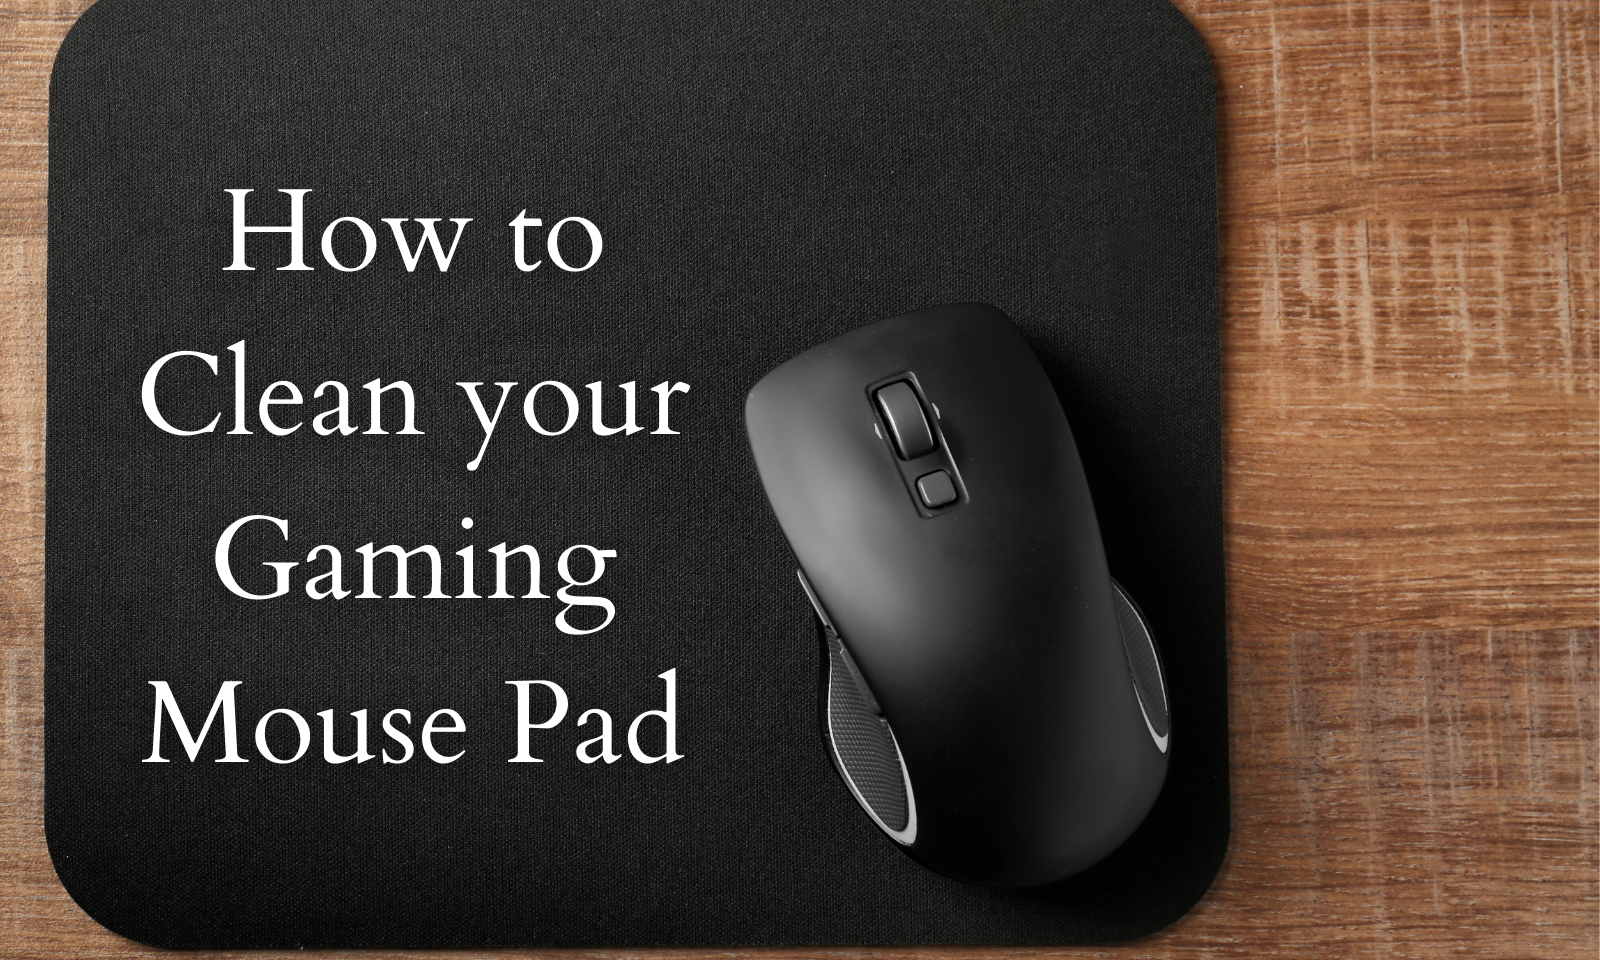 How to Clean your Gaming Mouse Pad